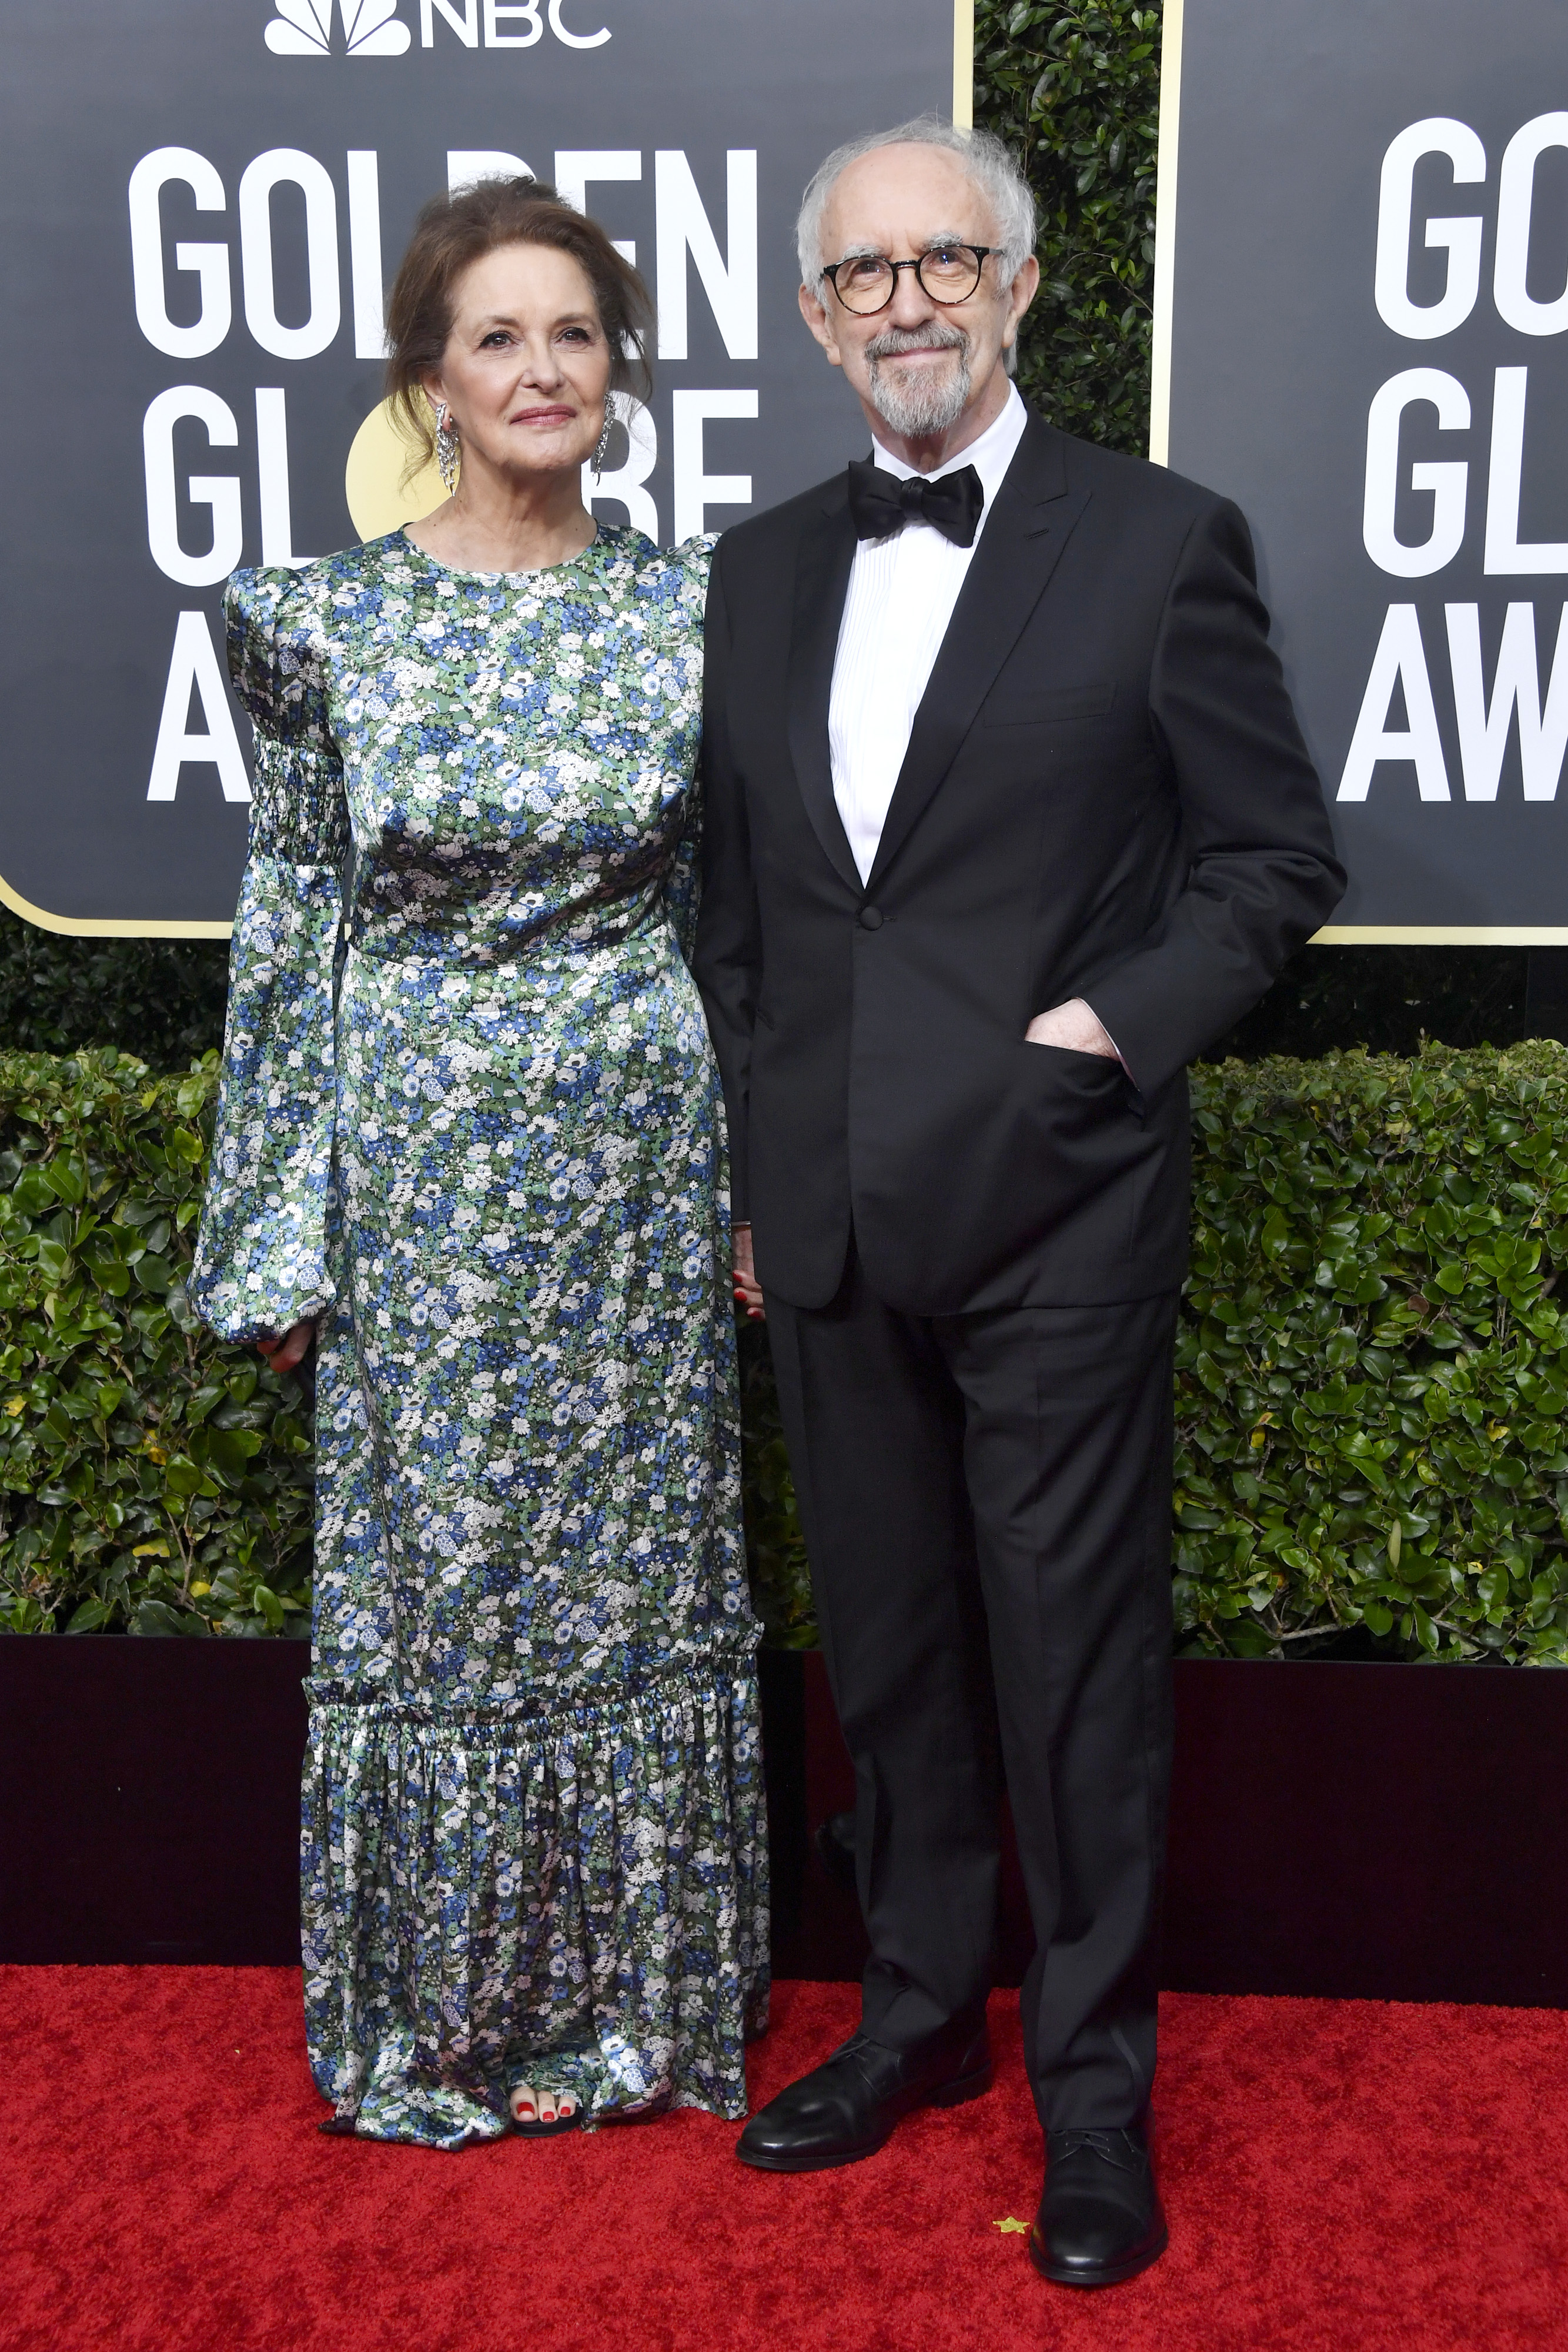 BEVERLY HILLS, CALIFORNIA - JANUARY 05: (L-R) Kate Fahy and Jonathan Pryce attend the 77th Annual Golden Globe Awards at The Beverly Hilton Hotel on January 05, 2020 in Beverly Hills, California. (Photo by Frazer Harrison/Getty Images)